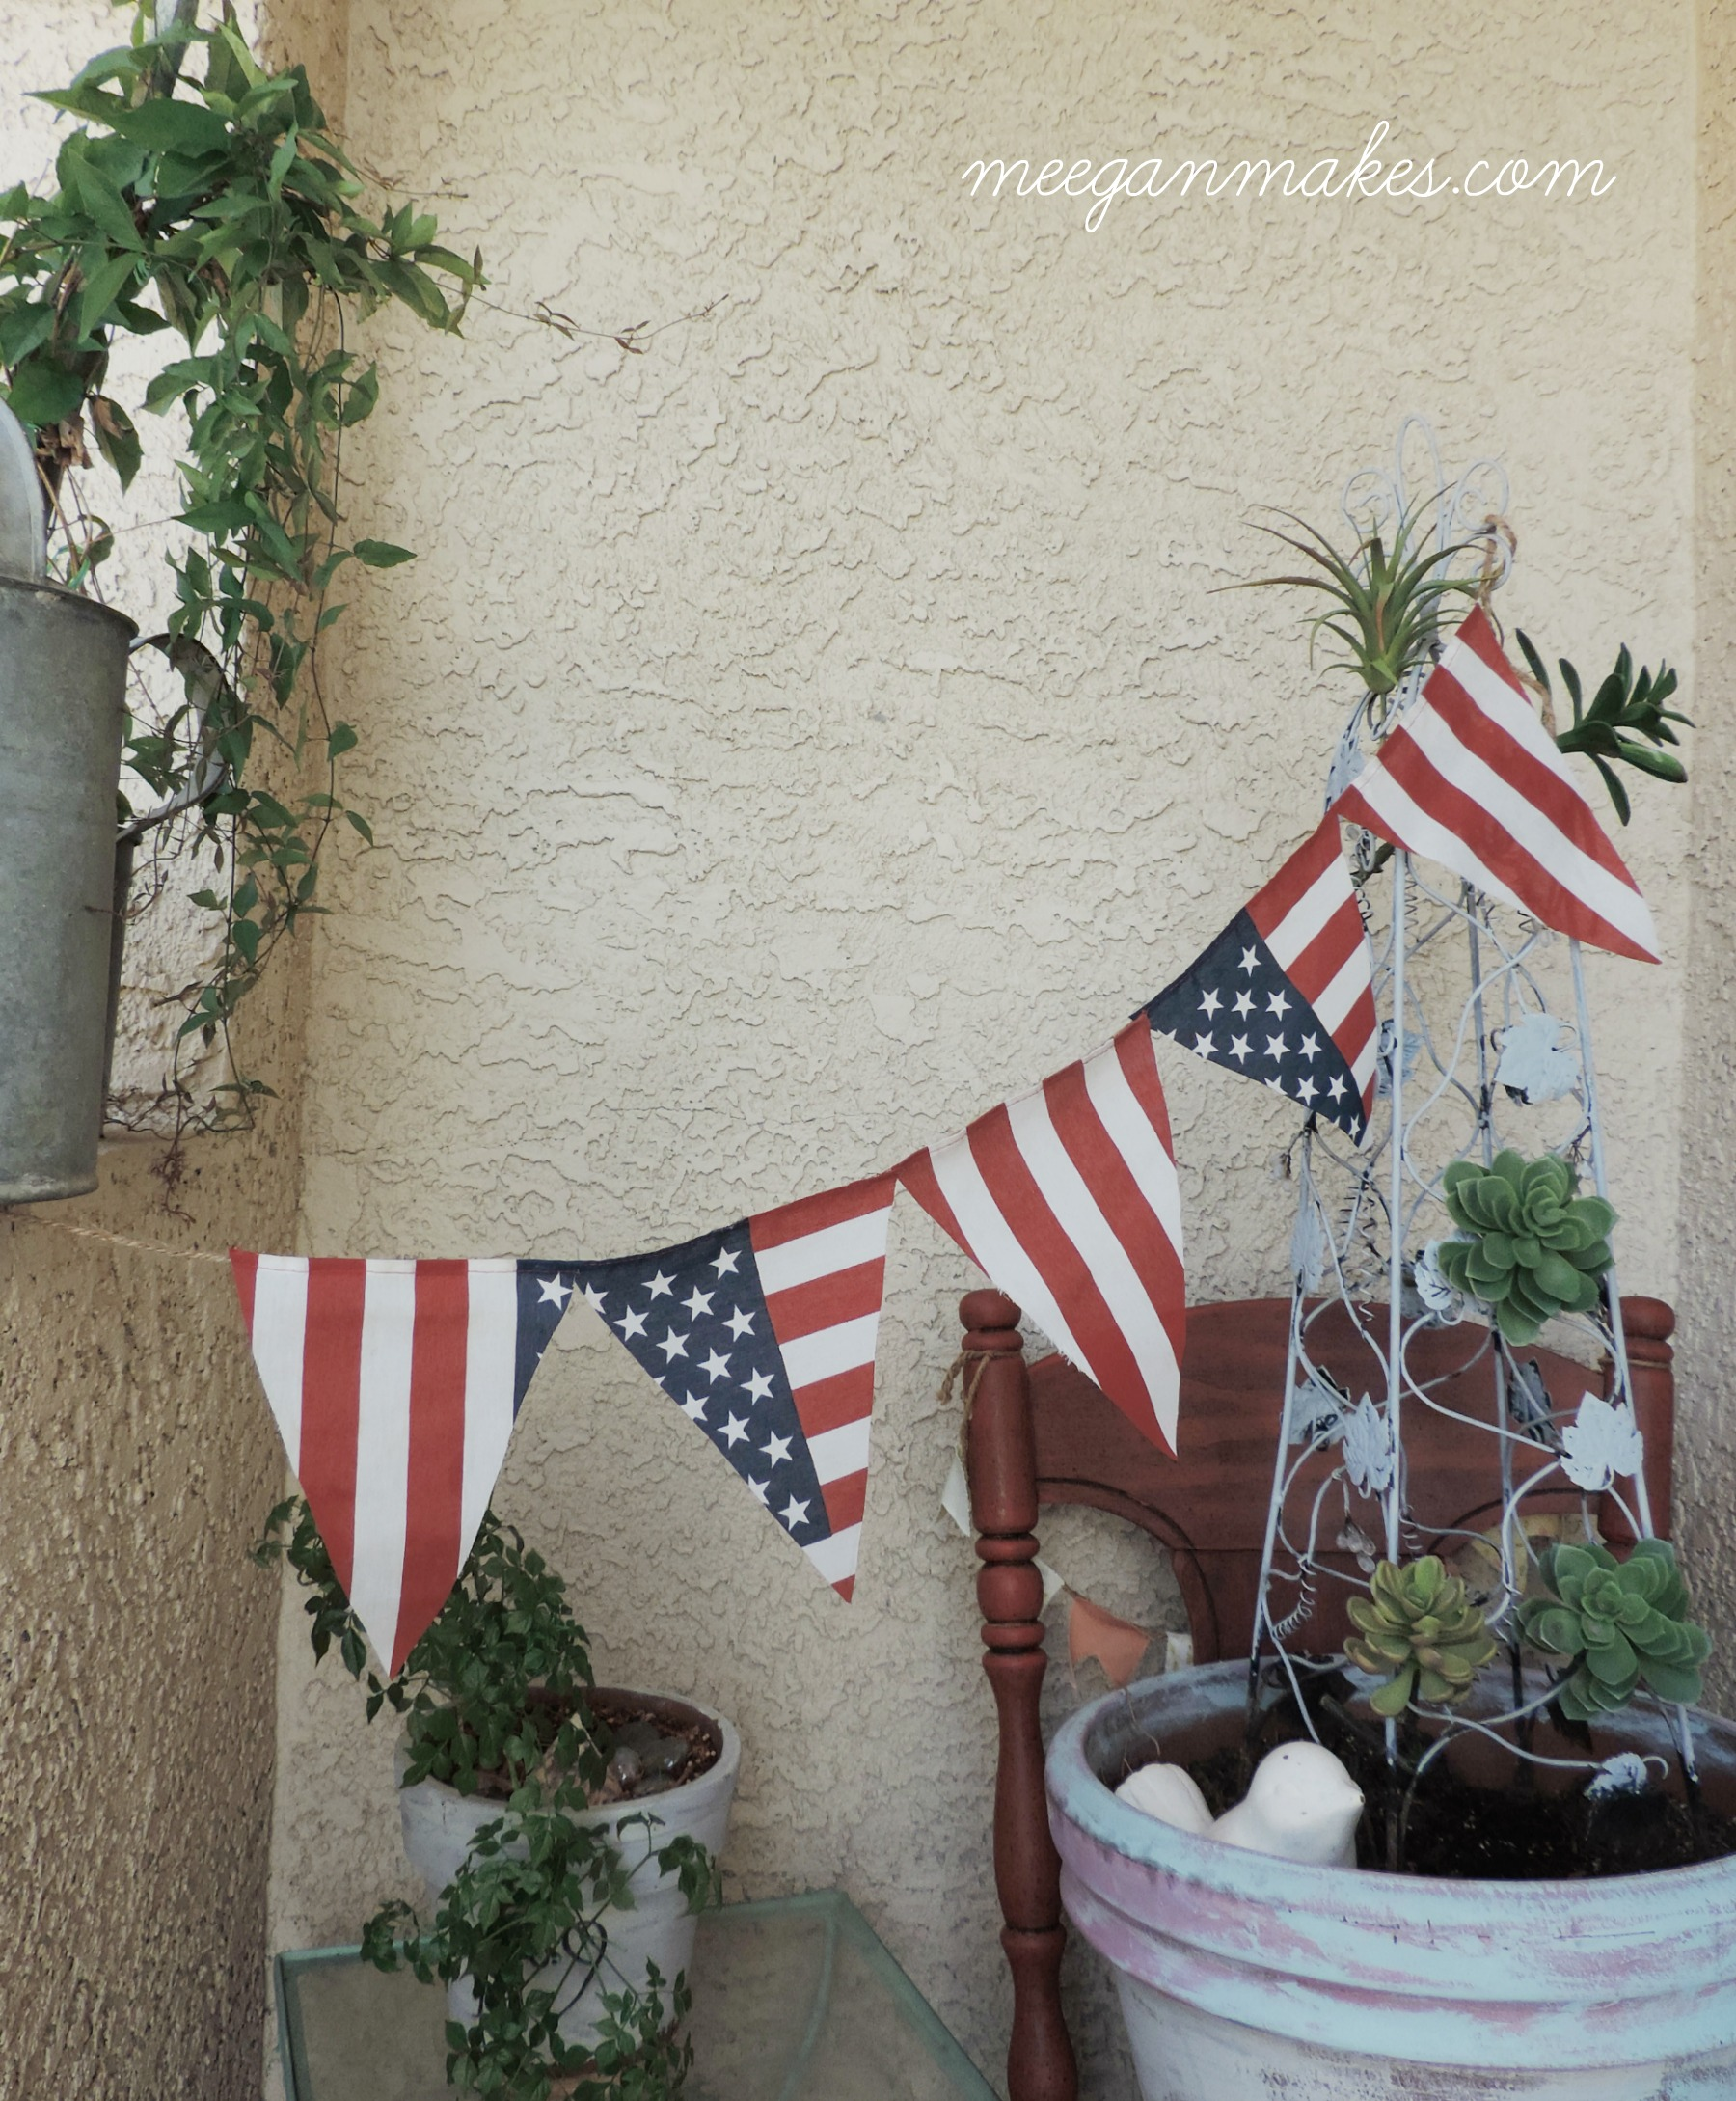 How To Make a Patriotic Pennant